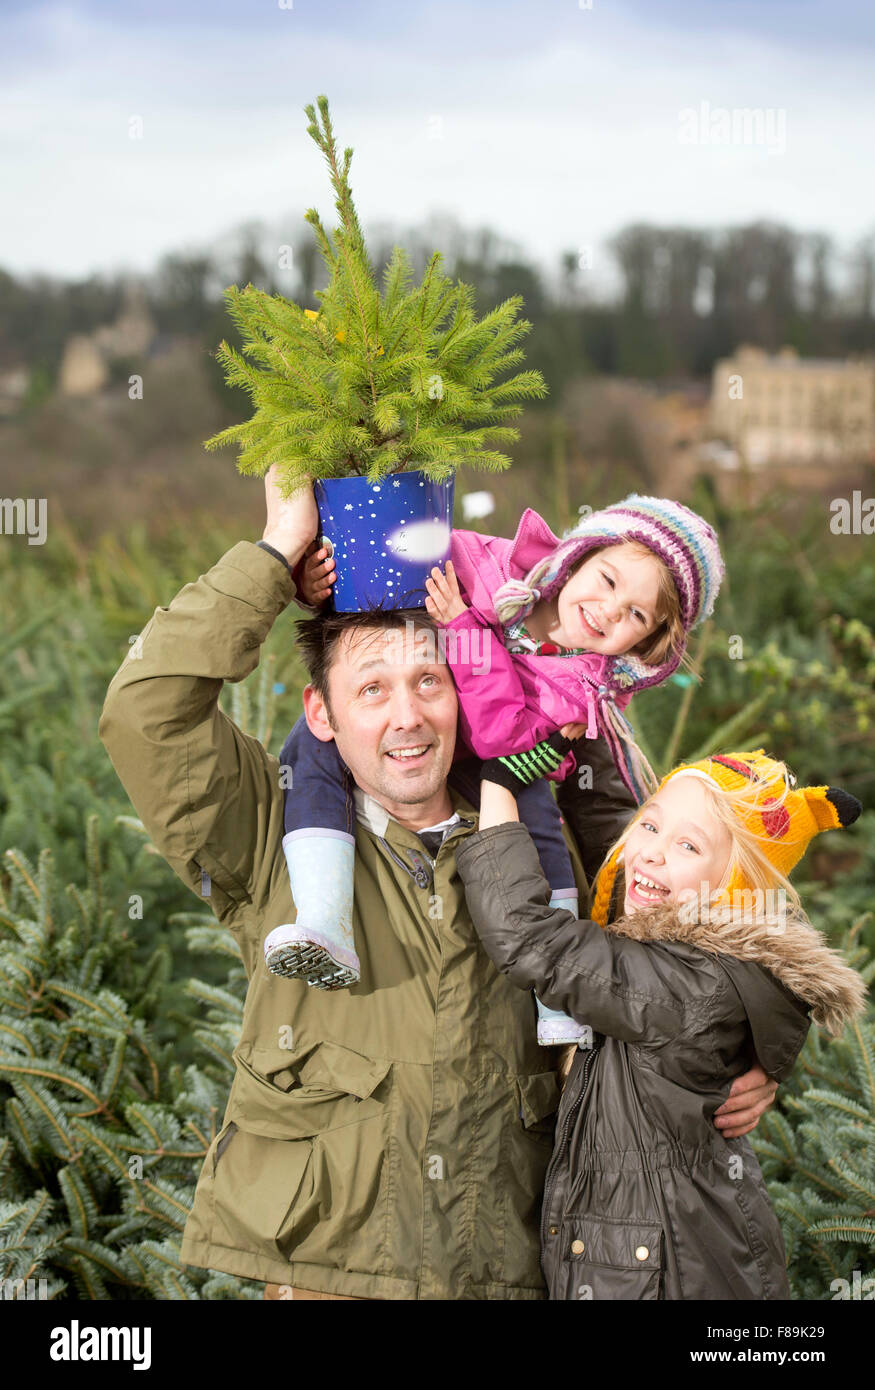 Christmas Xmas tree trees family buying collecting - Stock Image